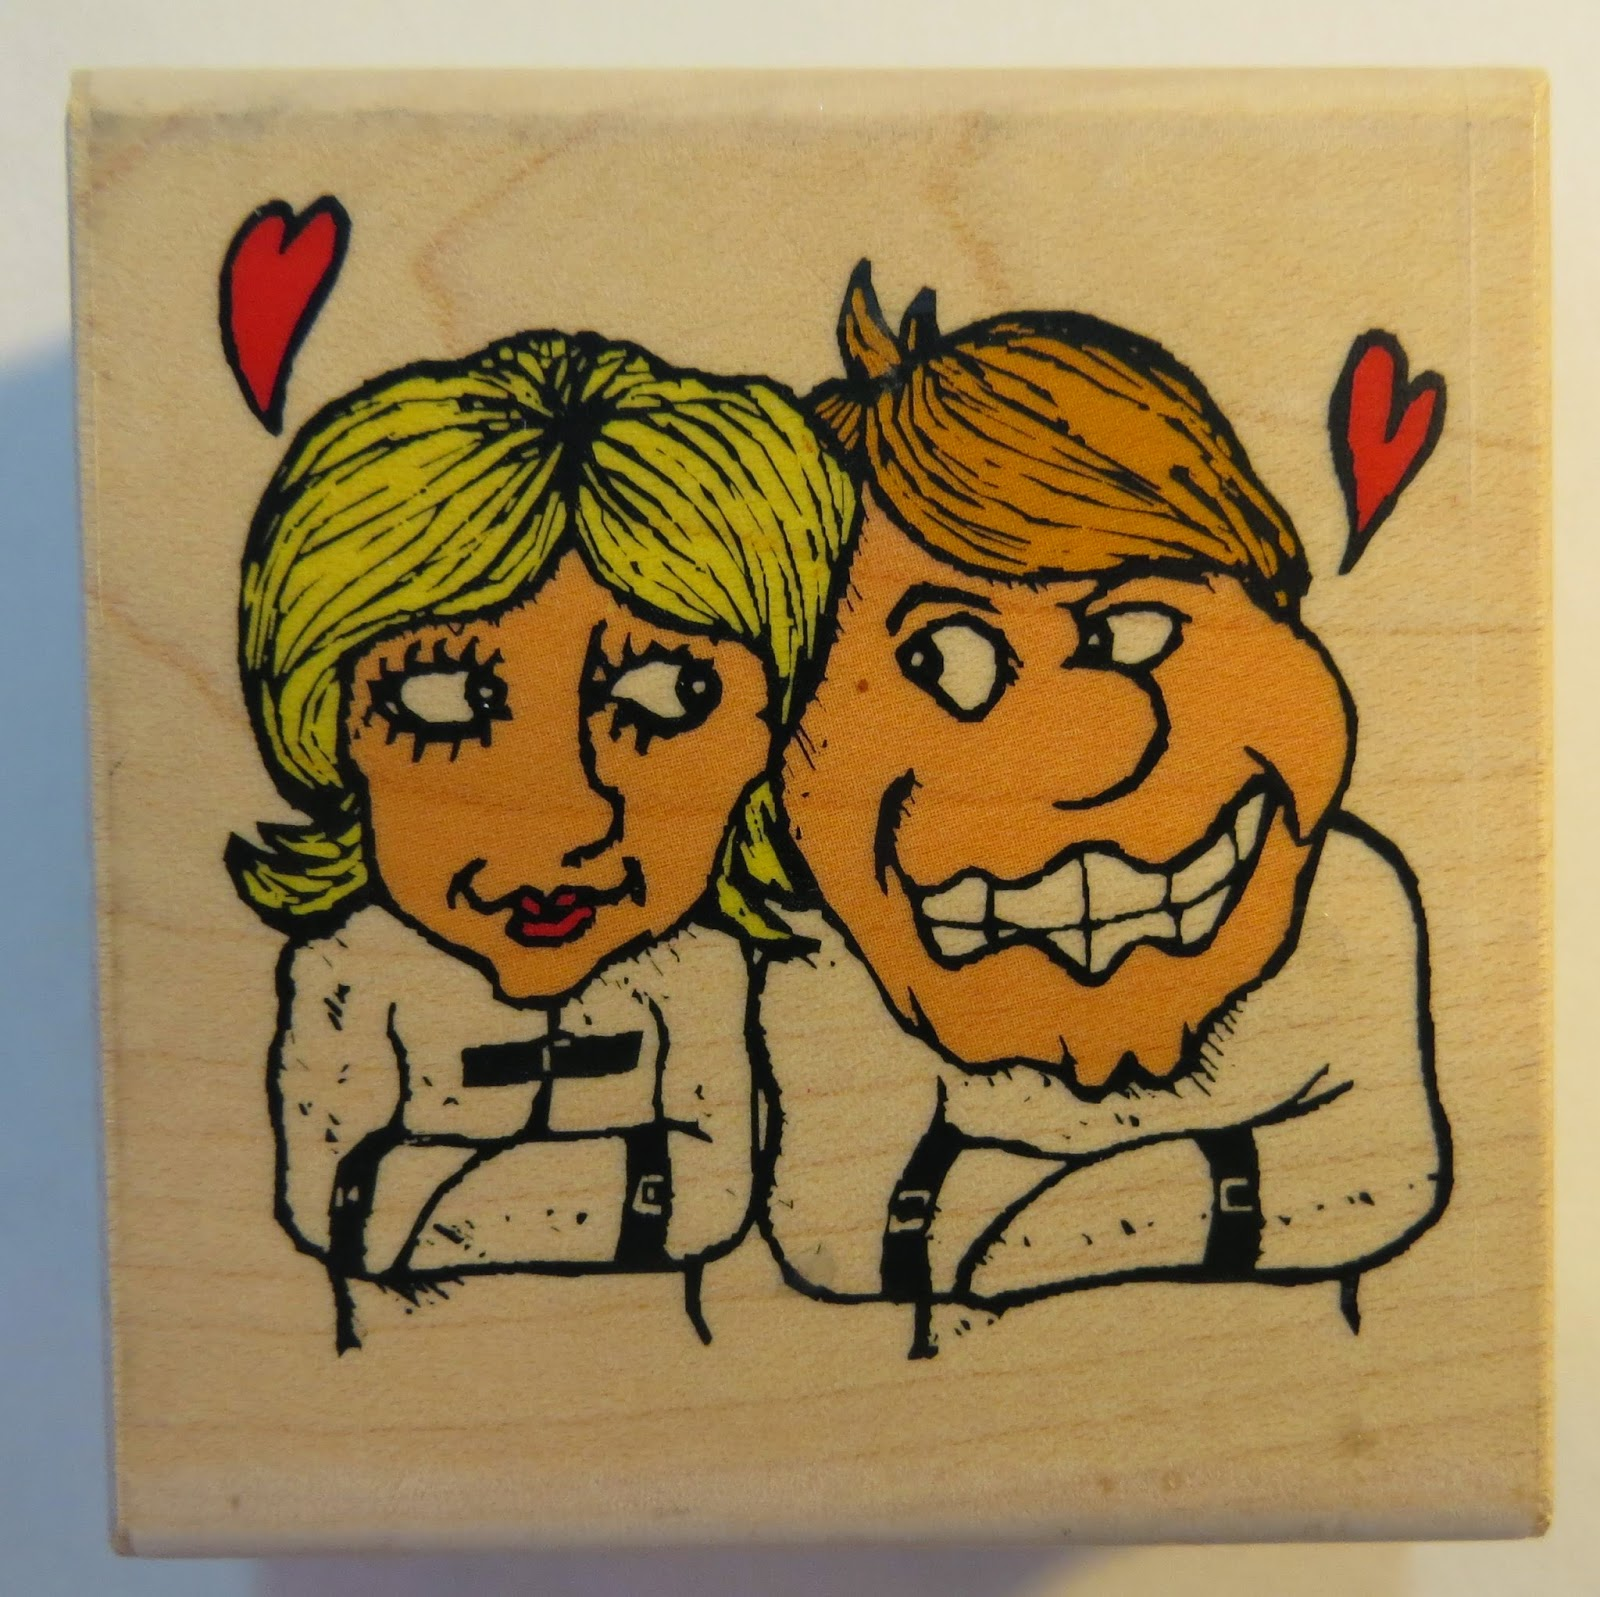 http://crackerboxrubberstamps.com/shop/crazy-in-love